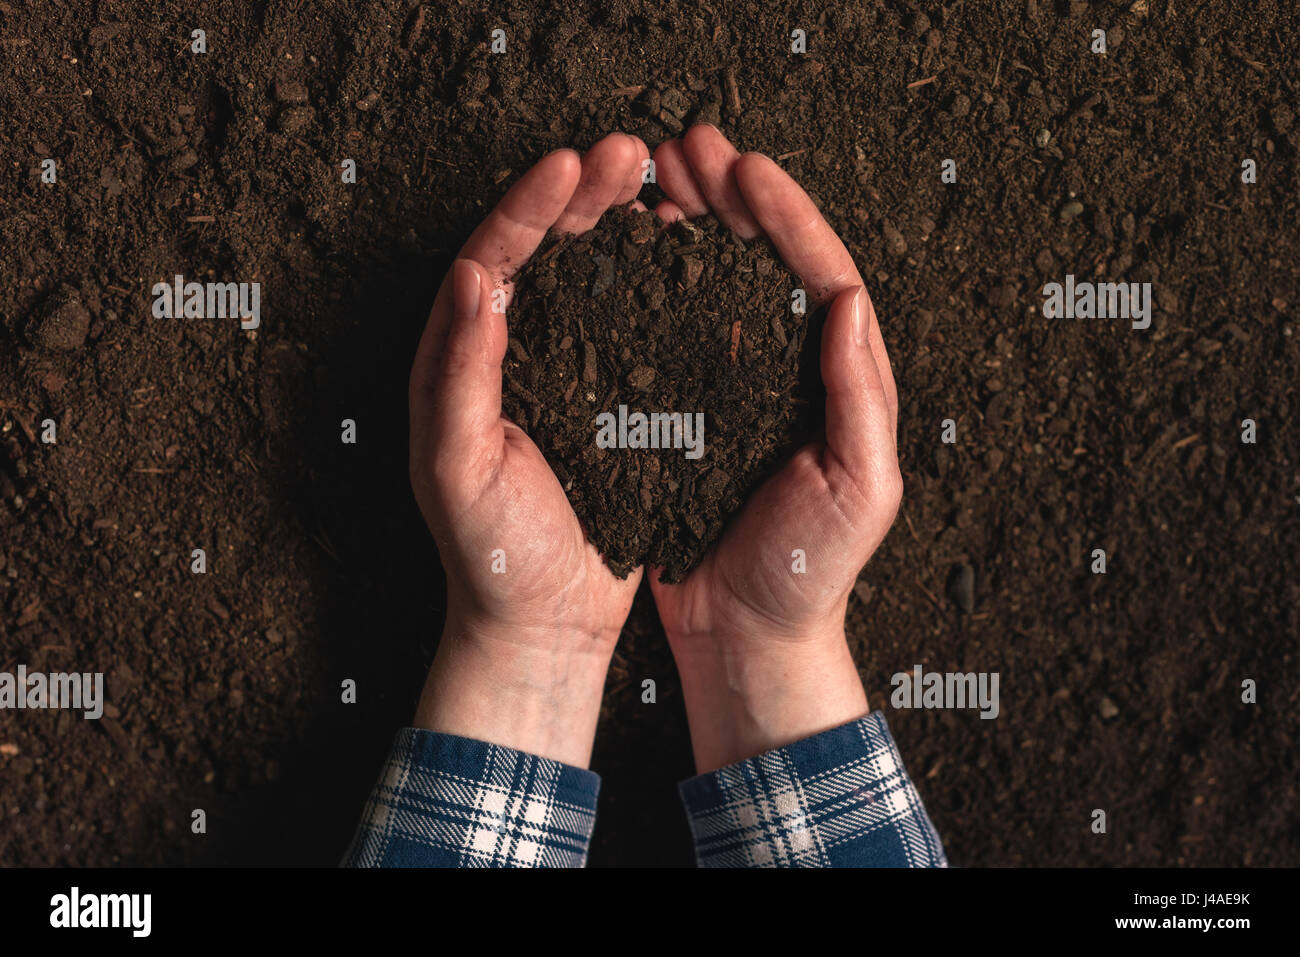 Soil fertility analysis as agricultural activity, female farmer holding arable ploughed dirt in cupped hands - Stock Image